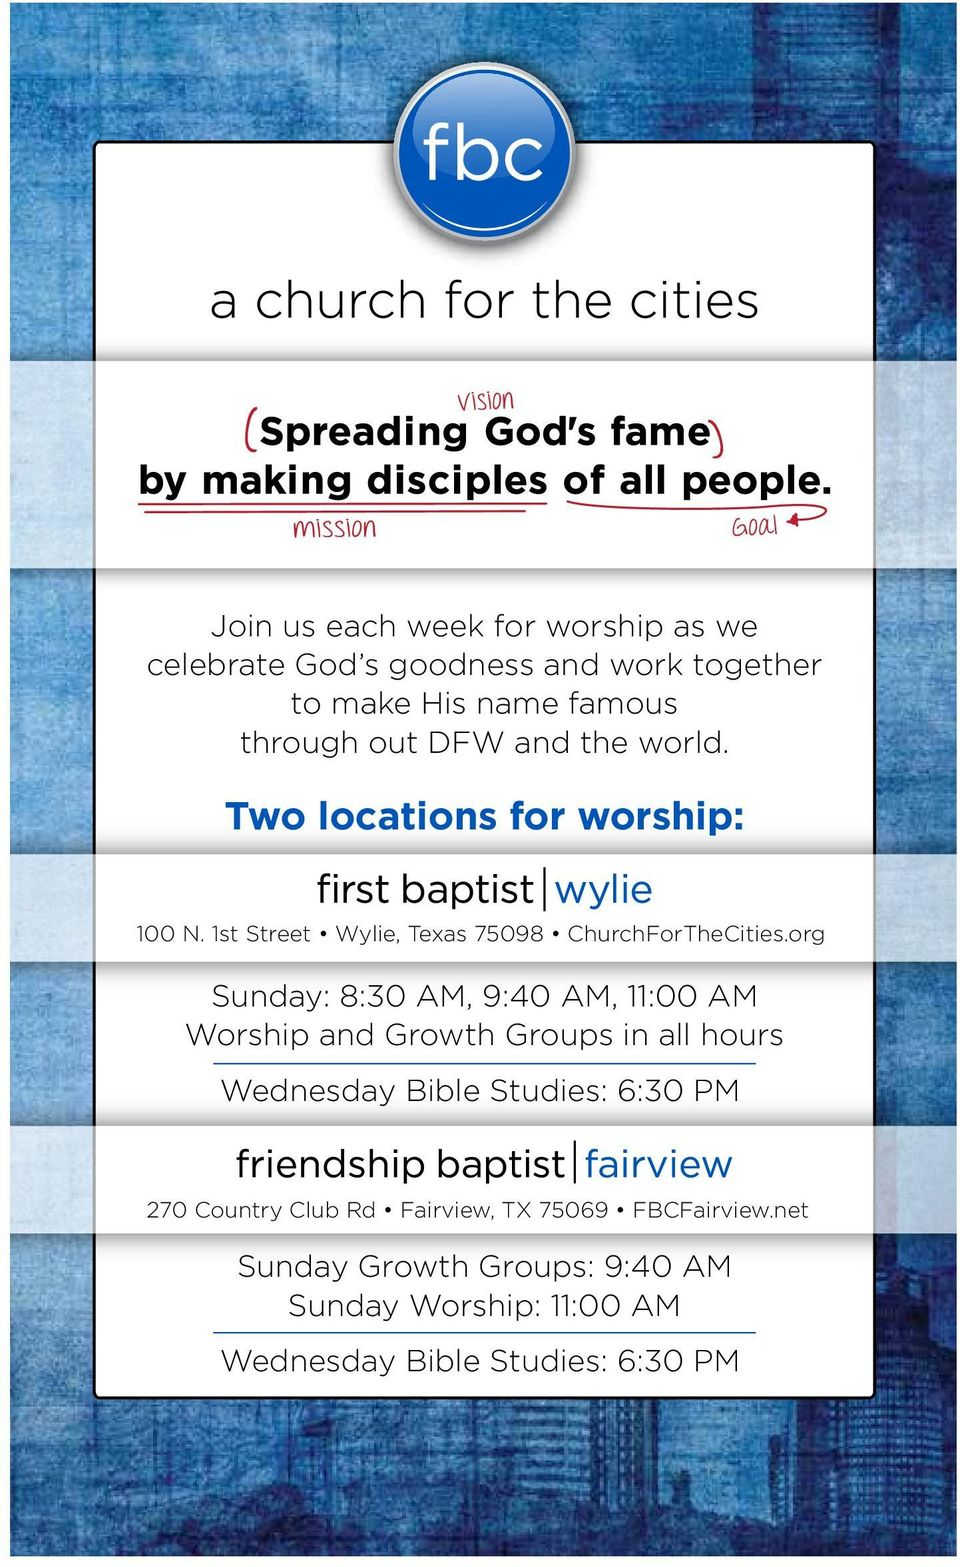 org Sunday: 8:30 AM, 9:40 AM, 11:00 AM Worship and Growth Groups in all hours Wednesday Bible Studies: 6:30 PM 270